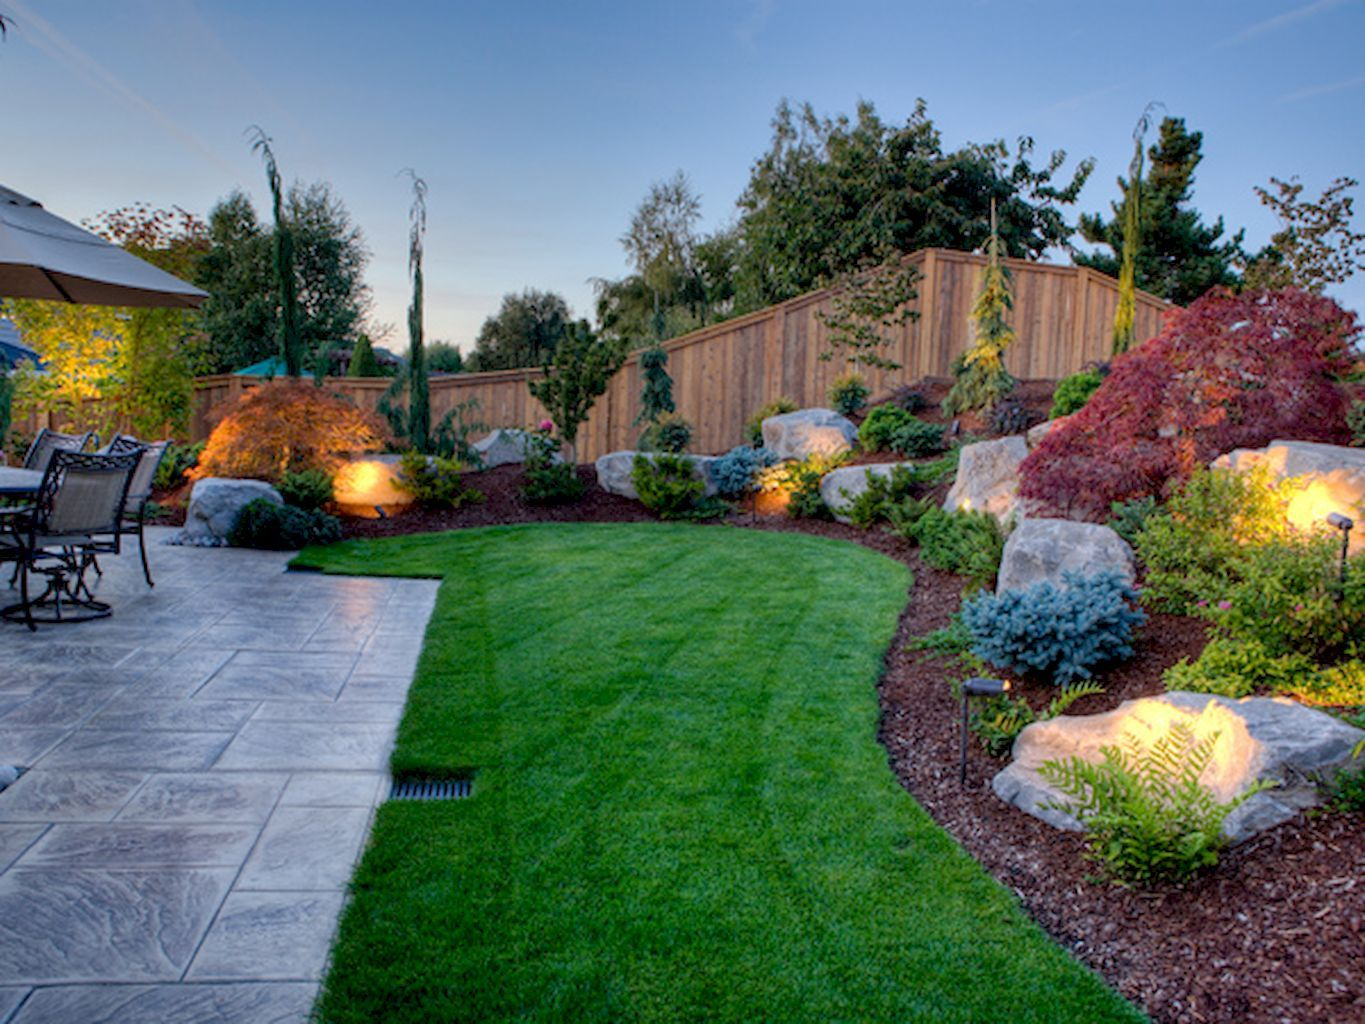 40 beautiful front yard landscaping ideas yard for Small lawn garden ideas